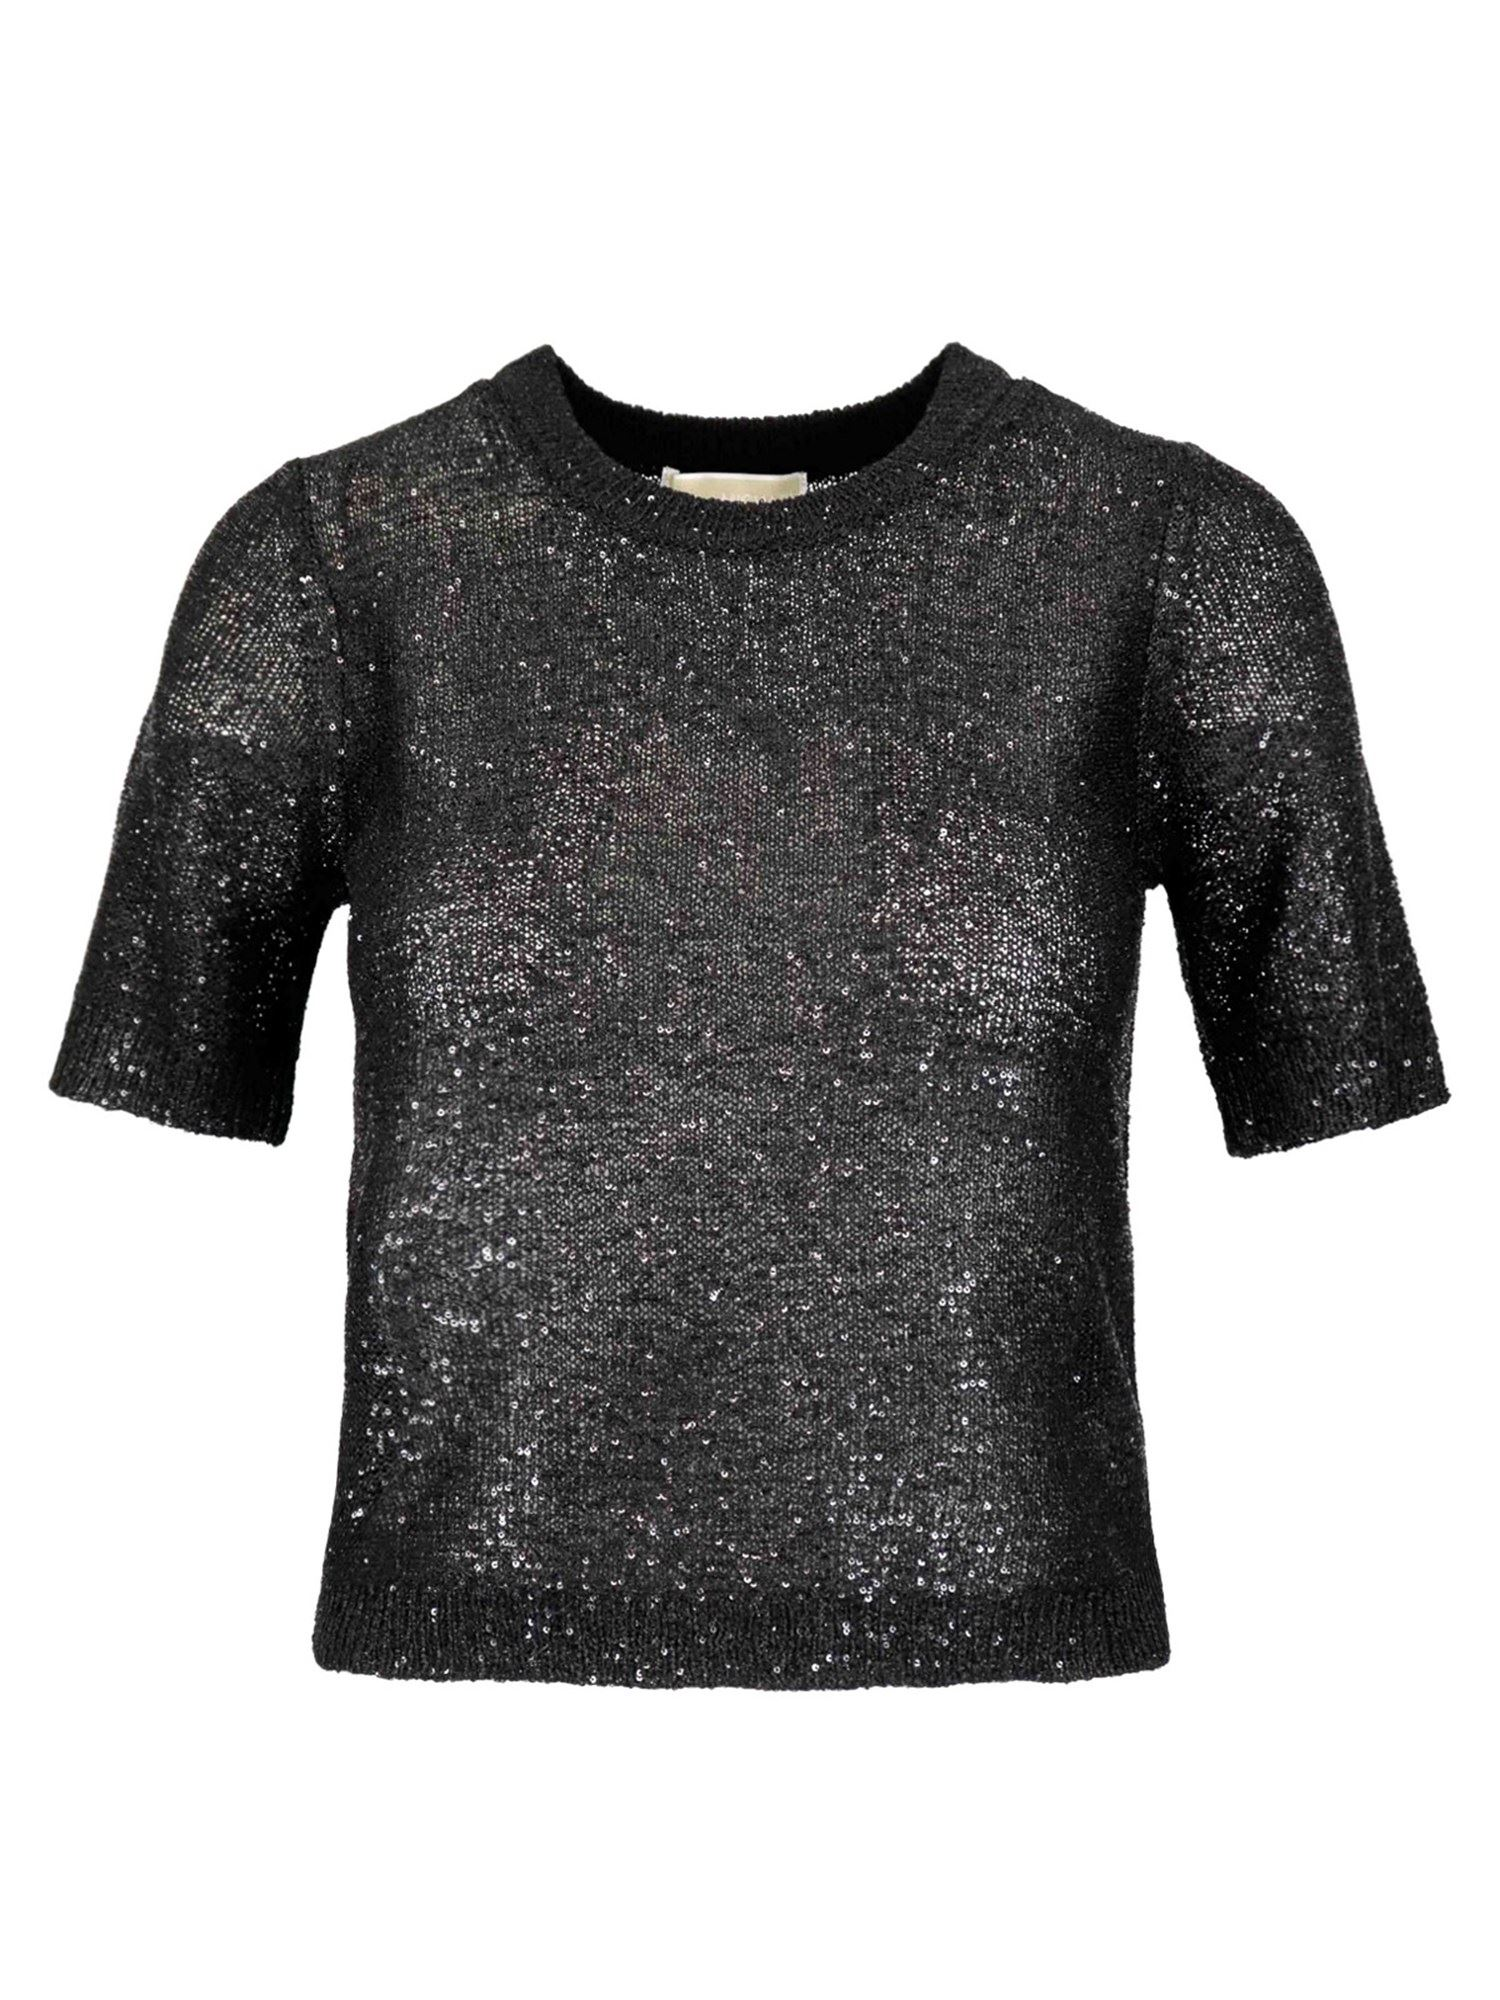 Michael Kors METAL EFFECT T-SHIRT